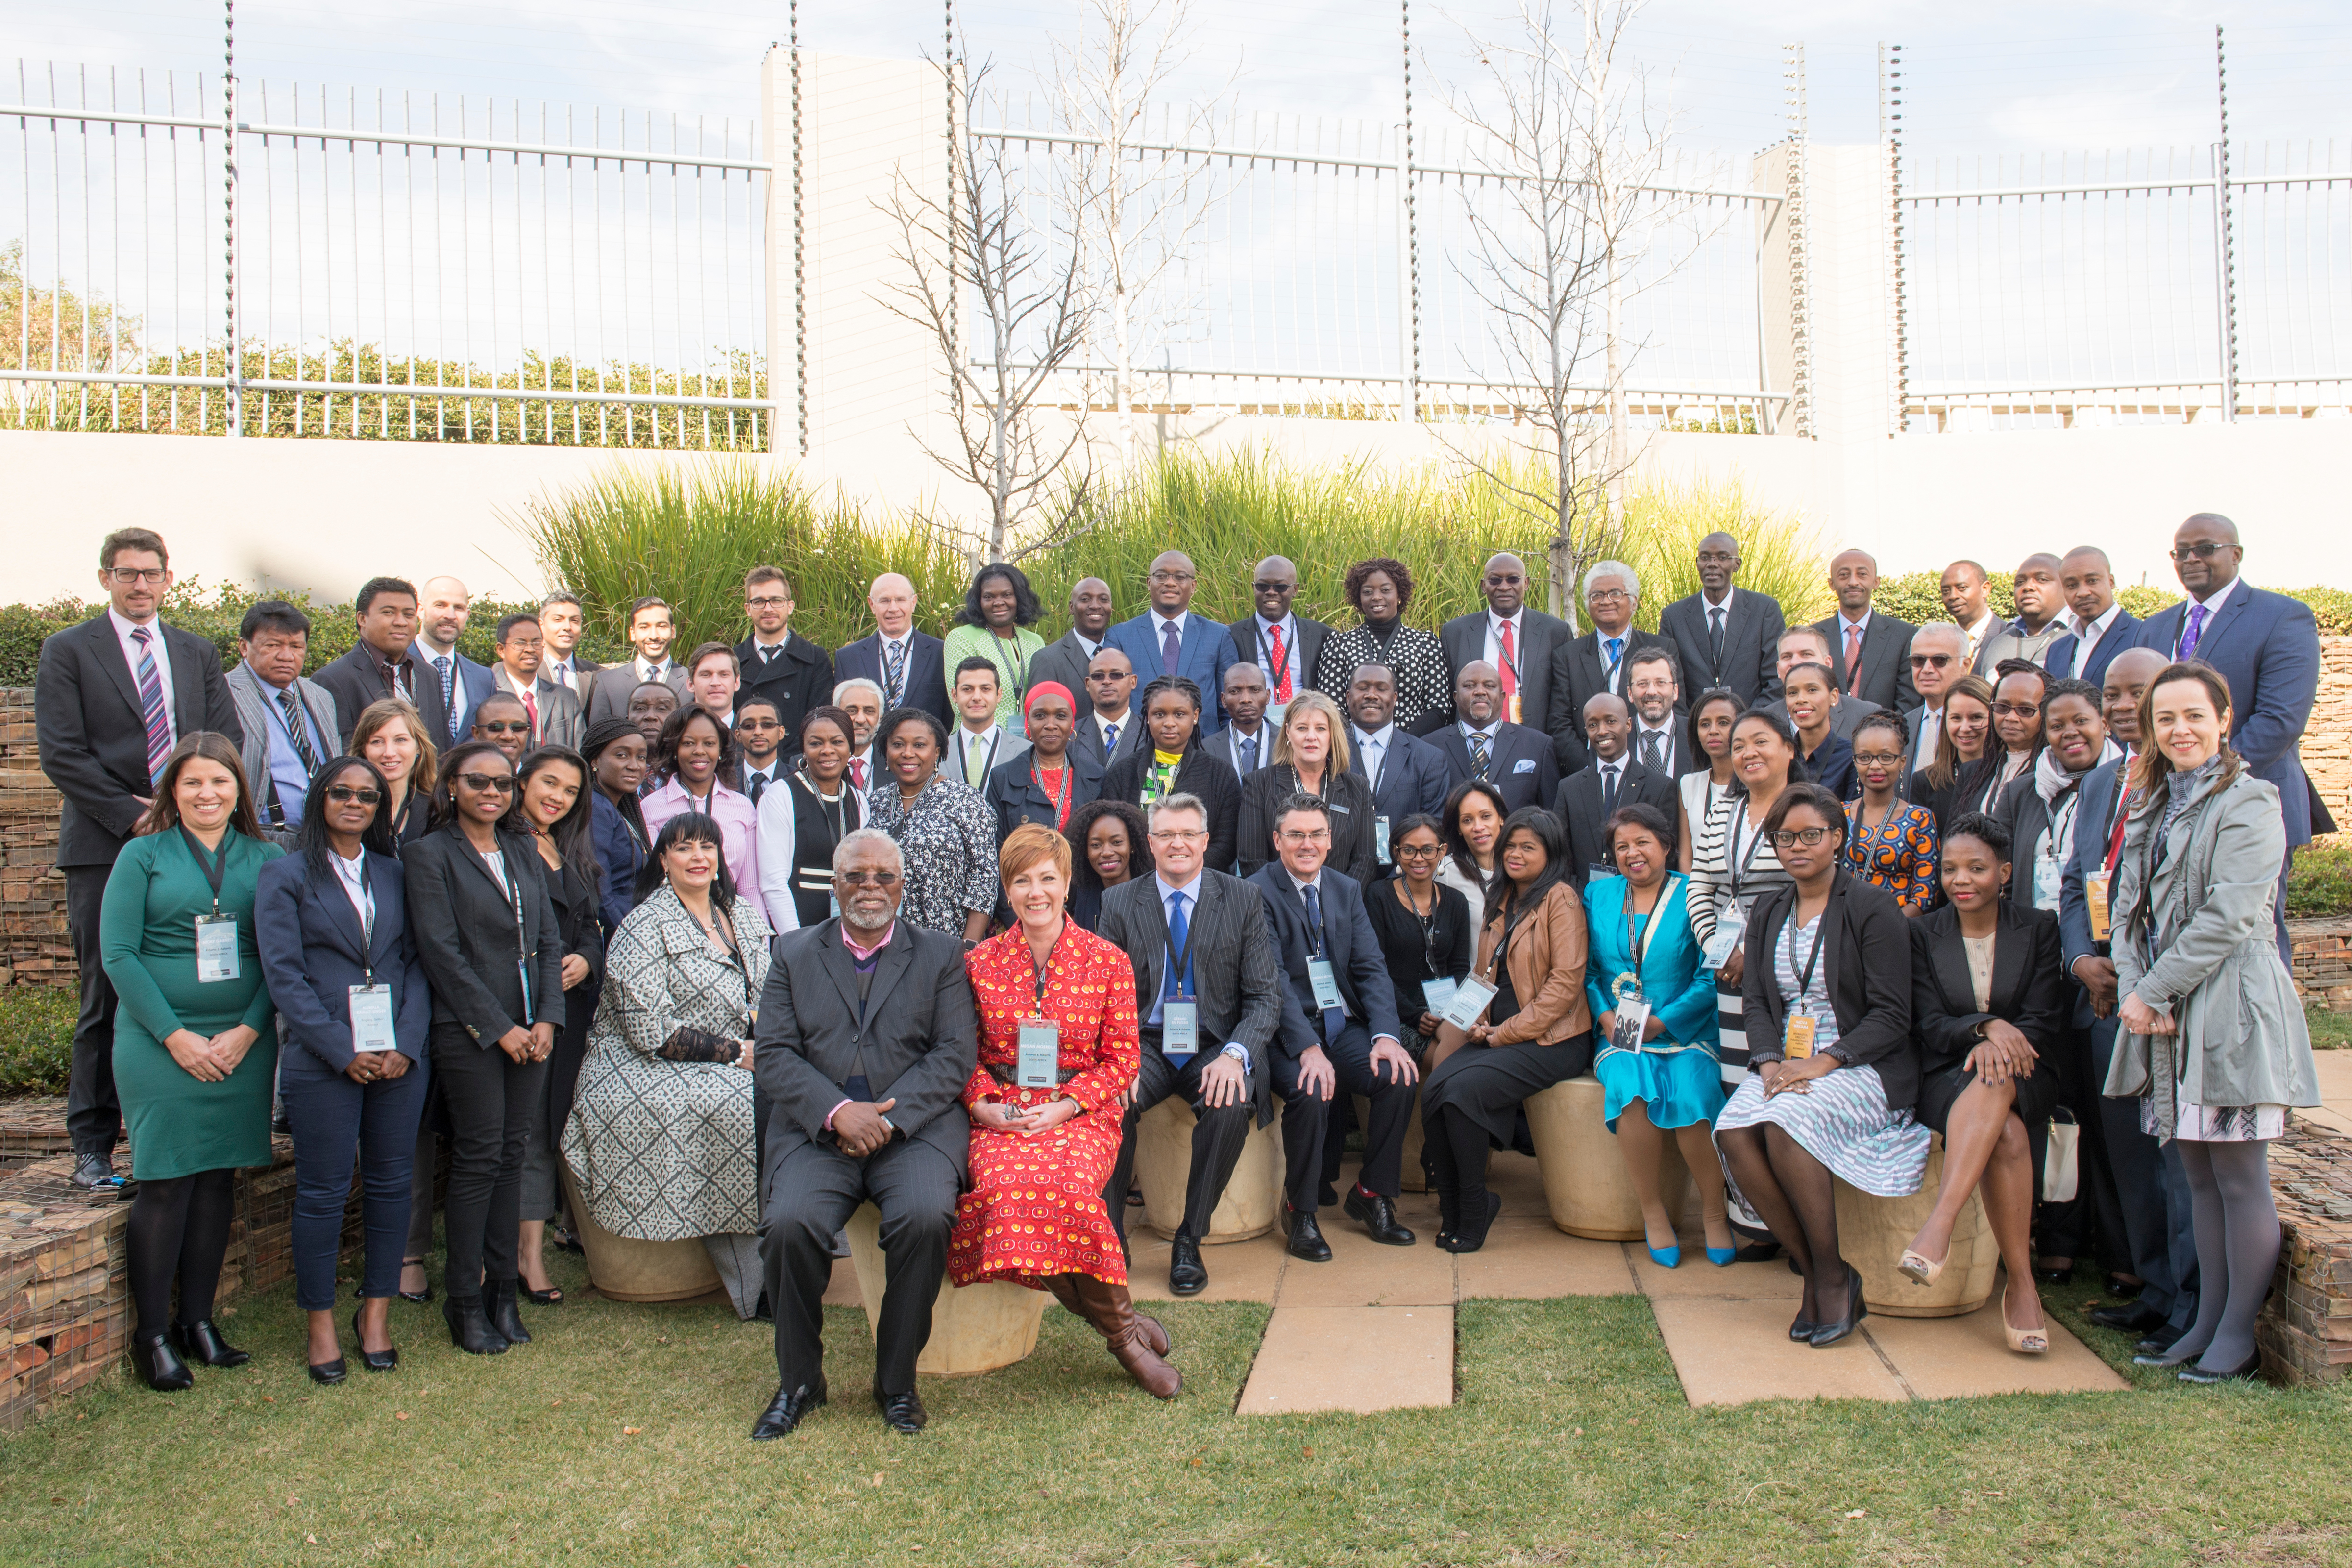 Delegates to the 4TH Annual Adams & Adams Africa Network Meeting held at our Head Office in Pretoria, South Africa from 14 – 15 August 2016